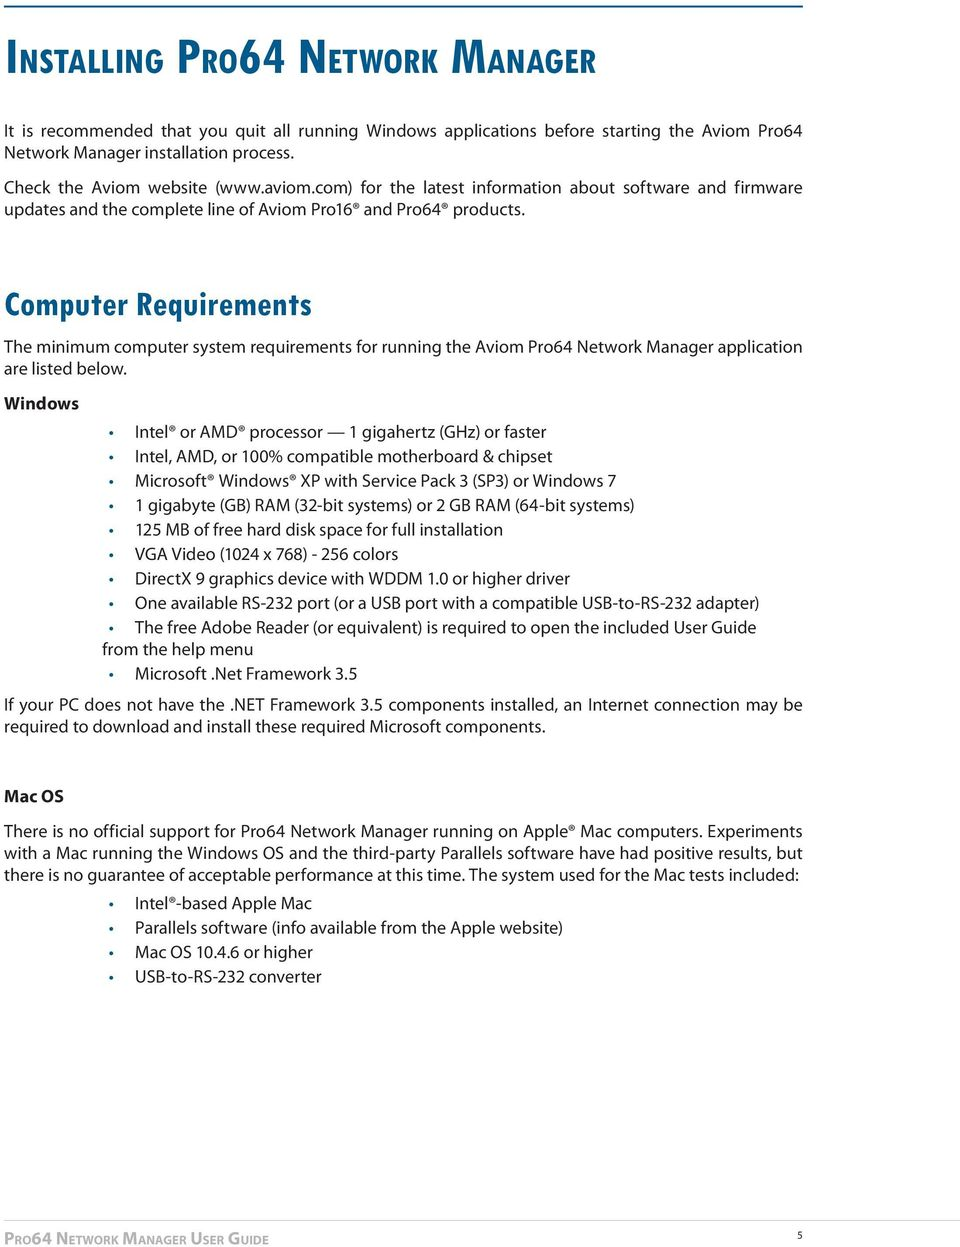 Computer Requirements The minimum computer system requirements for running the Aviom Pro64 Network Manager application are listed below.